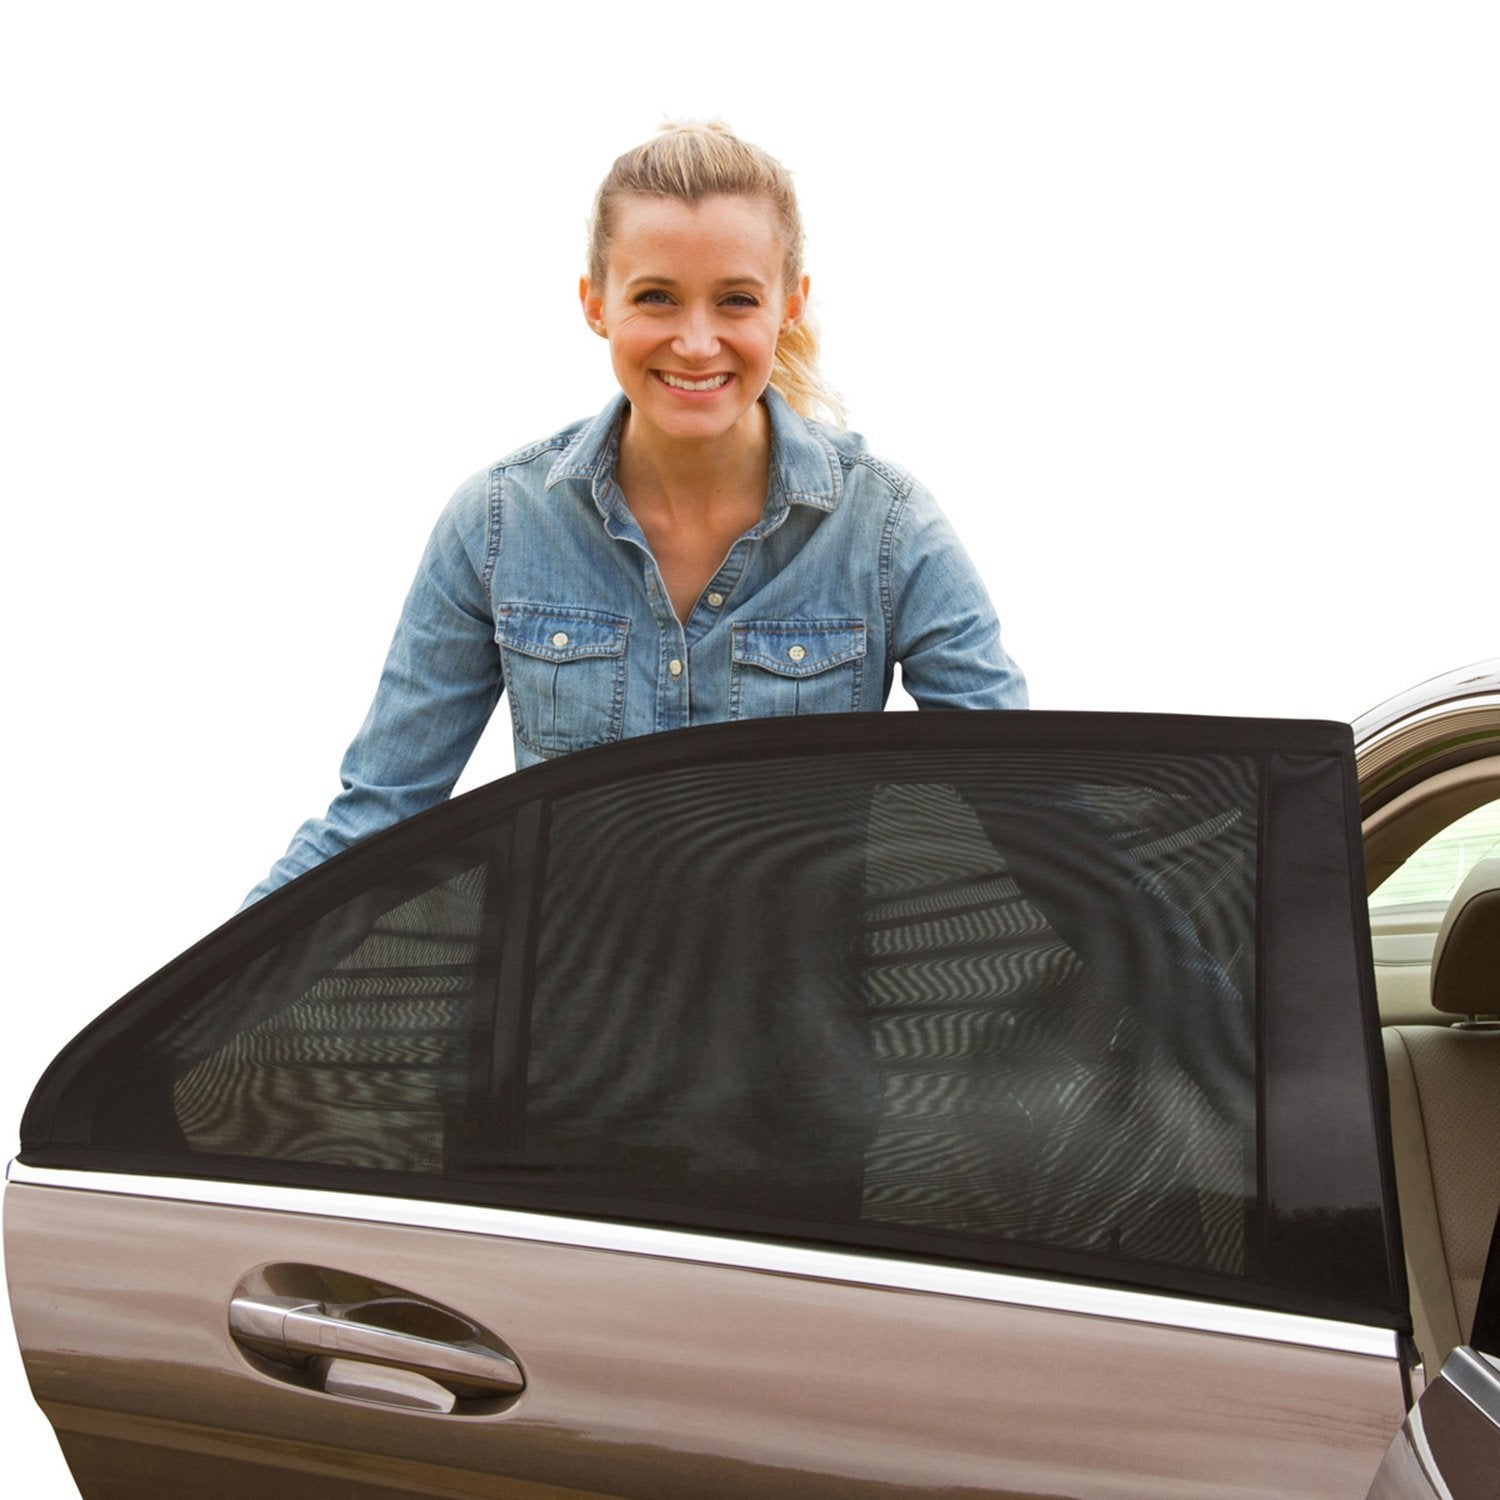 Car Slip On Window Shades (4 Pcs for all 4 windows)